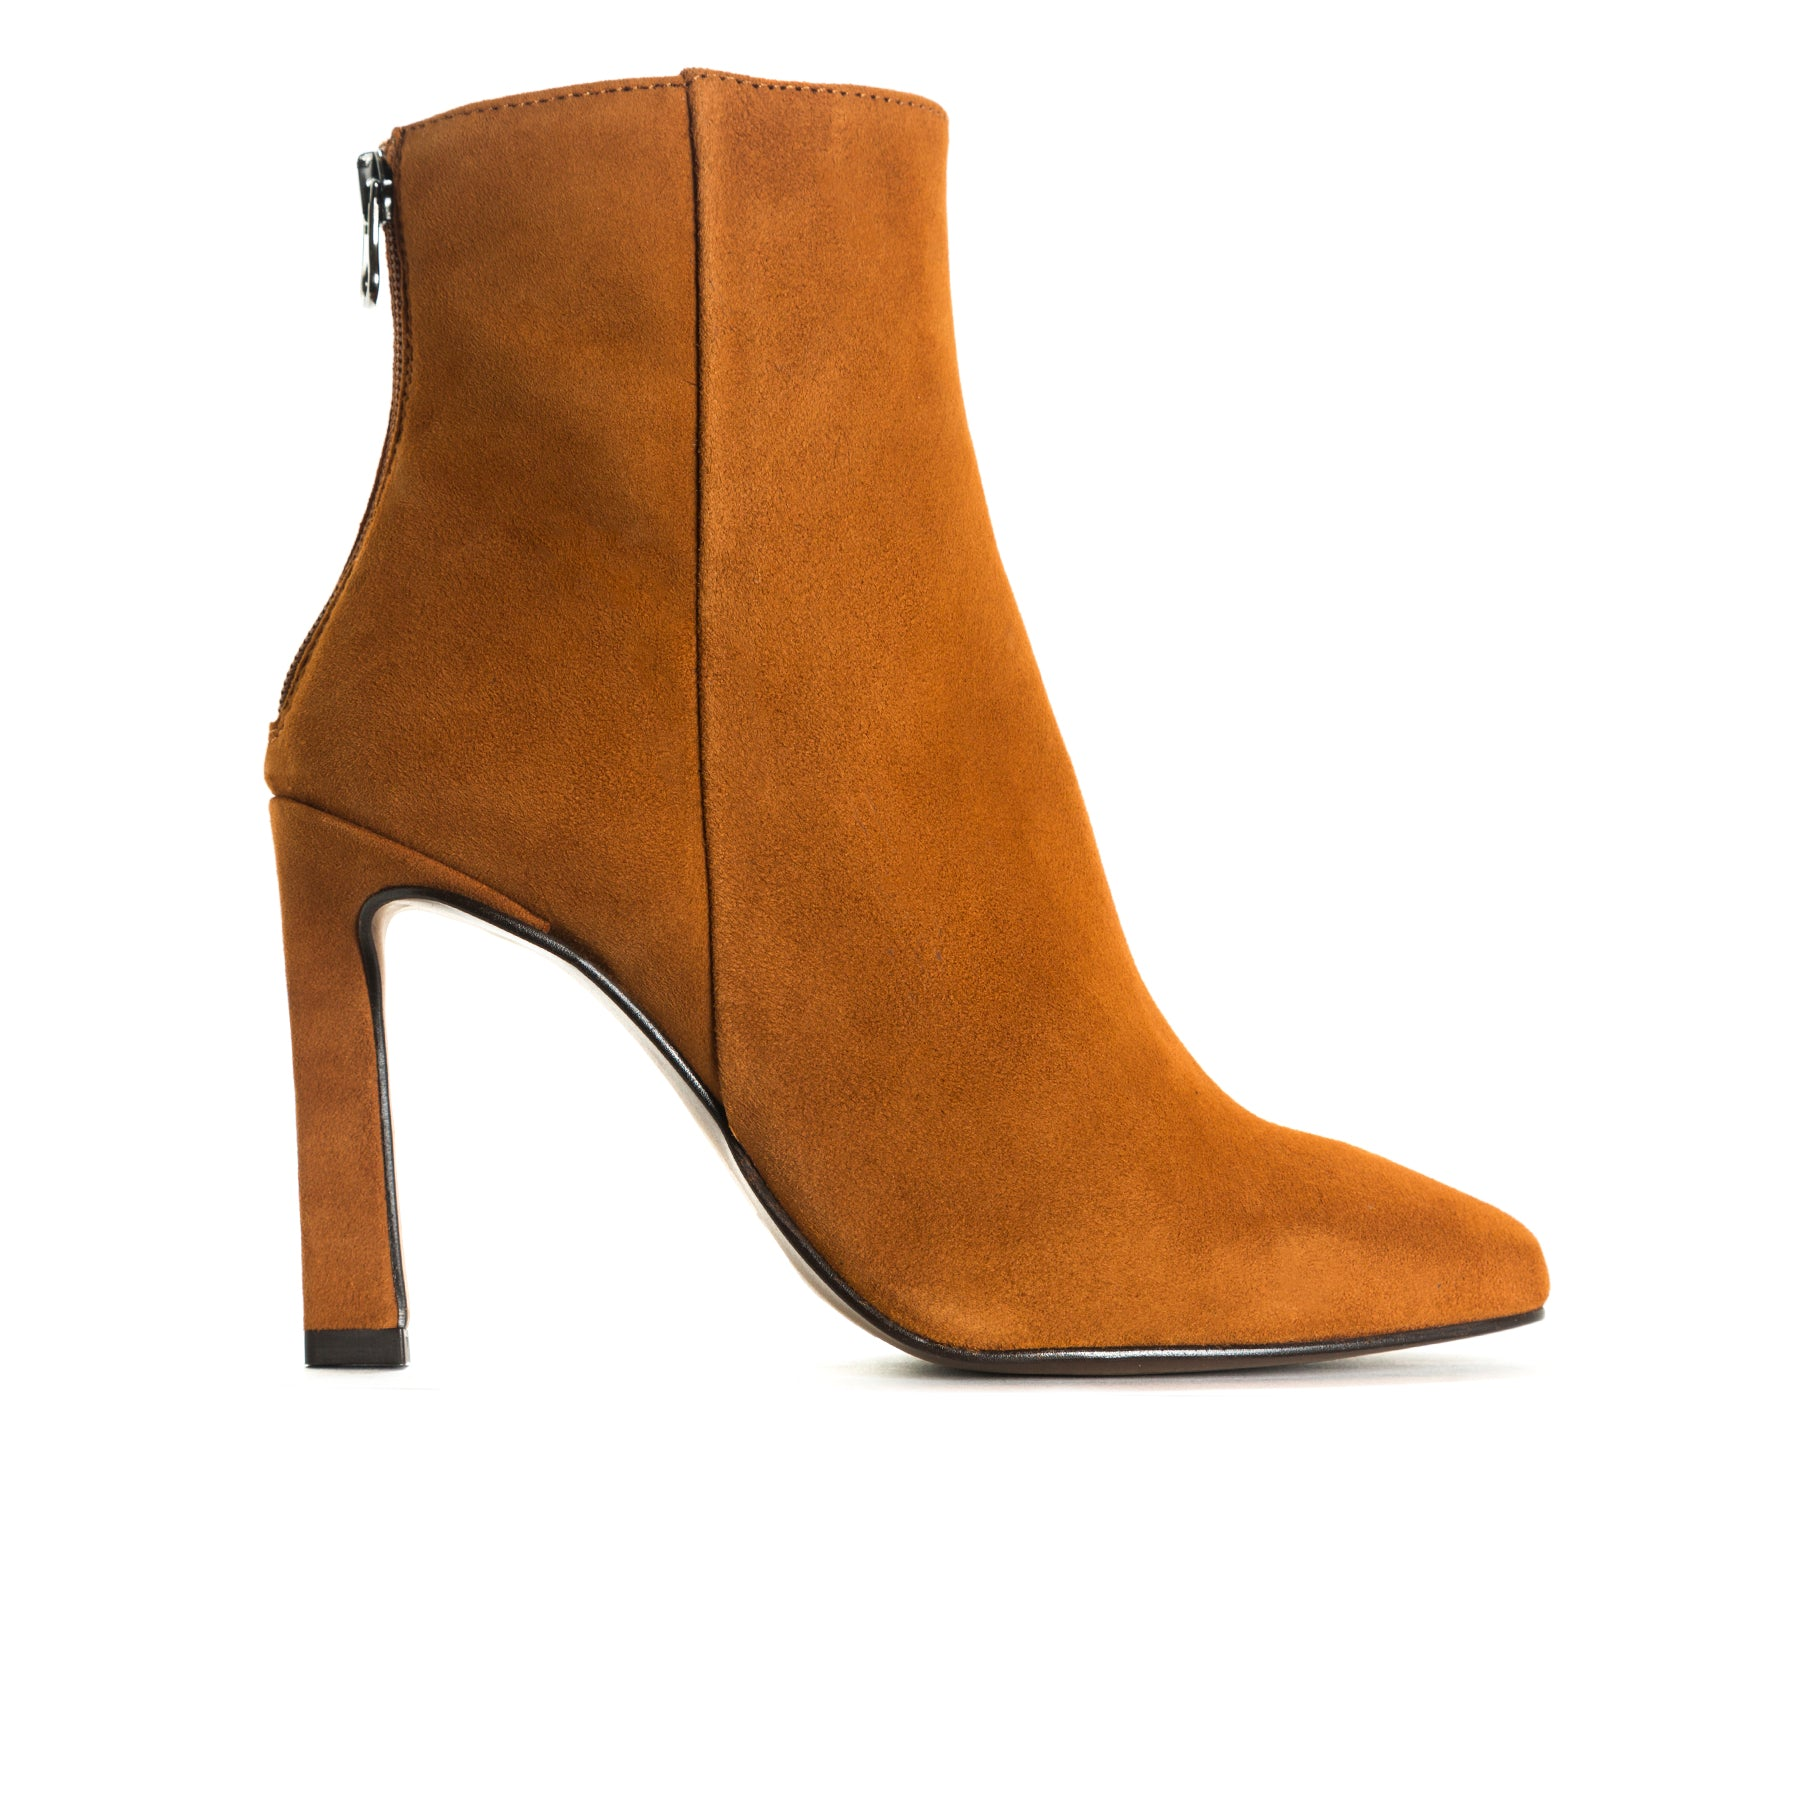 Lavrio Tan Suede Booties